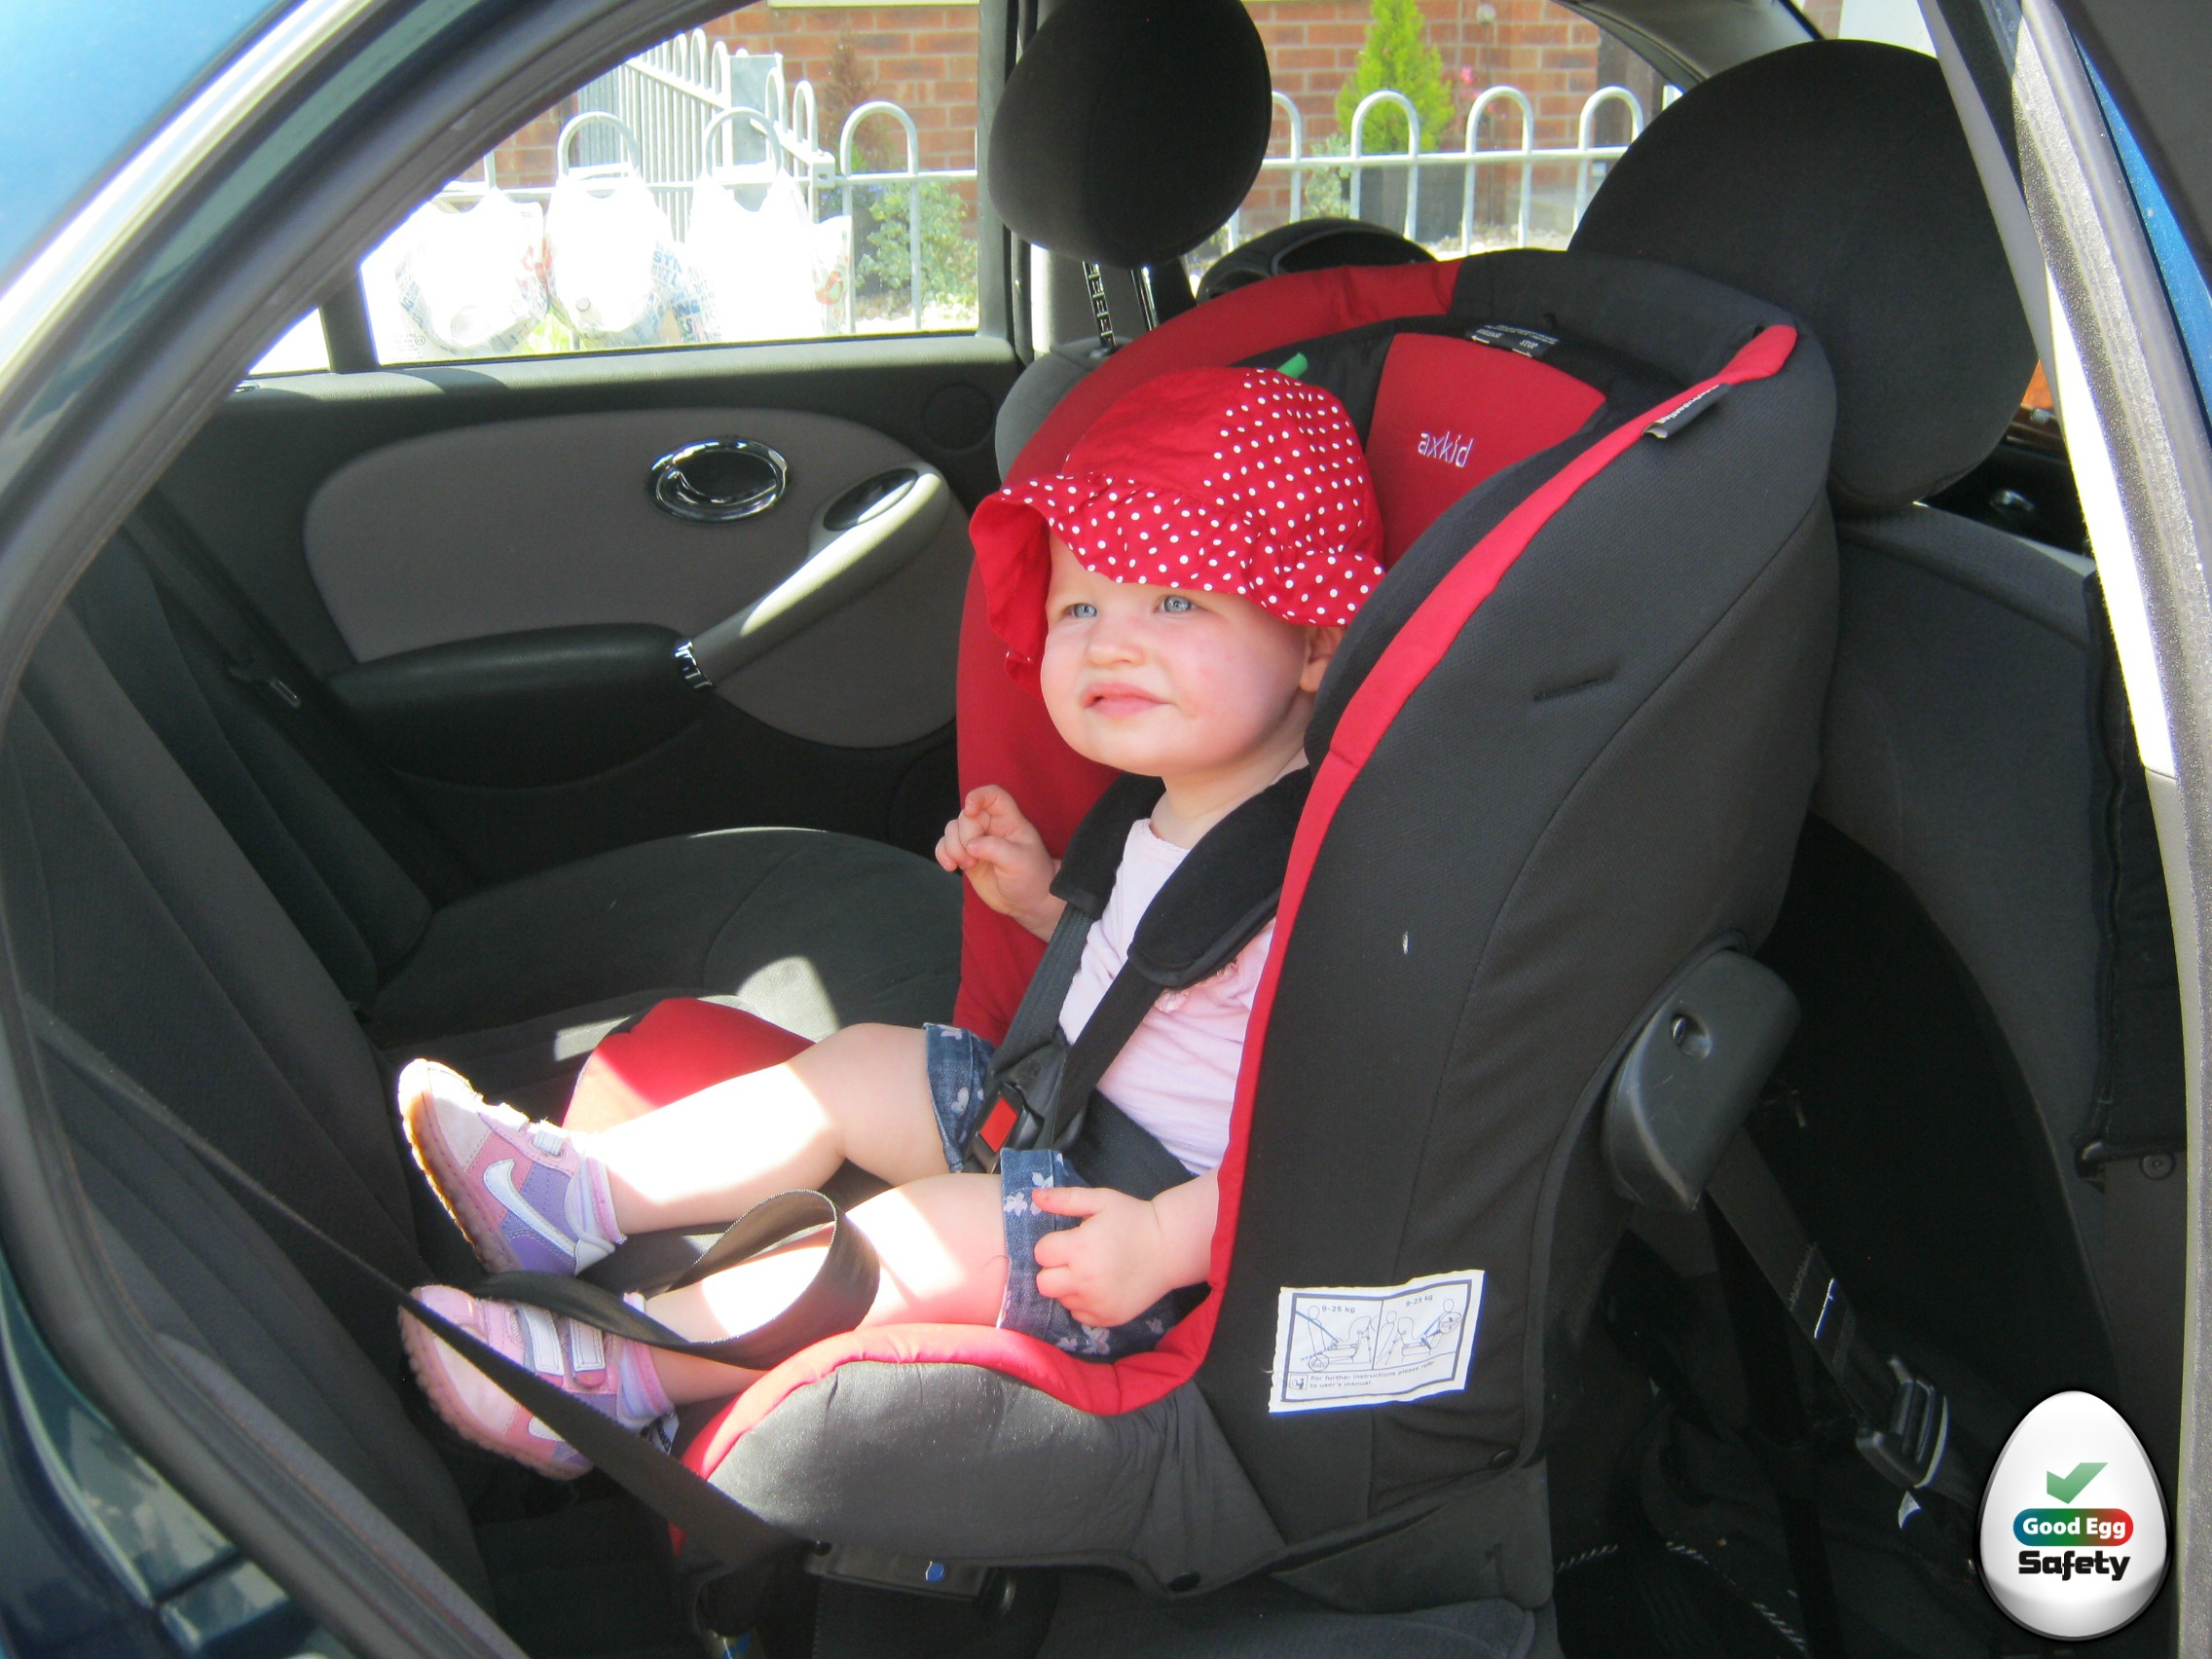 Infant Carrier Car Seat Guide When Should I Turn My Baby Forward Facing Good Egg Car Safety